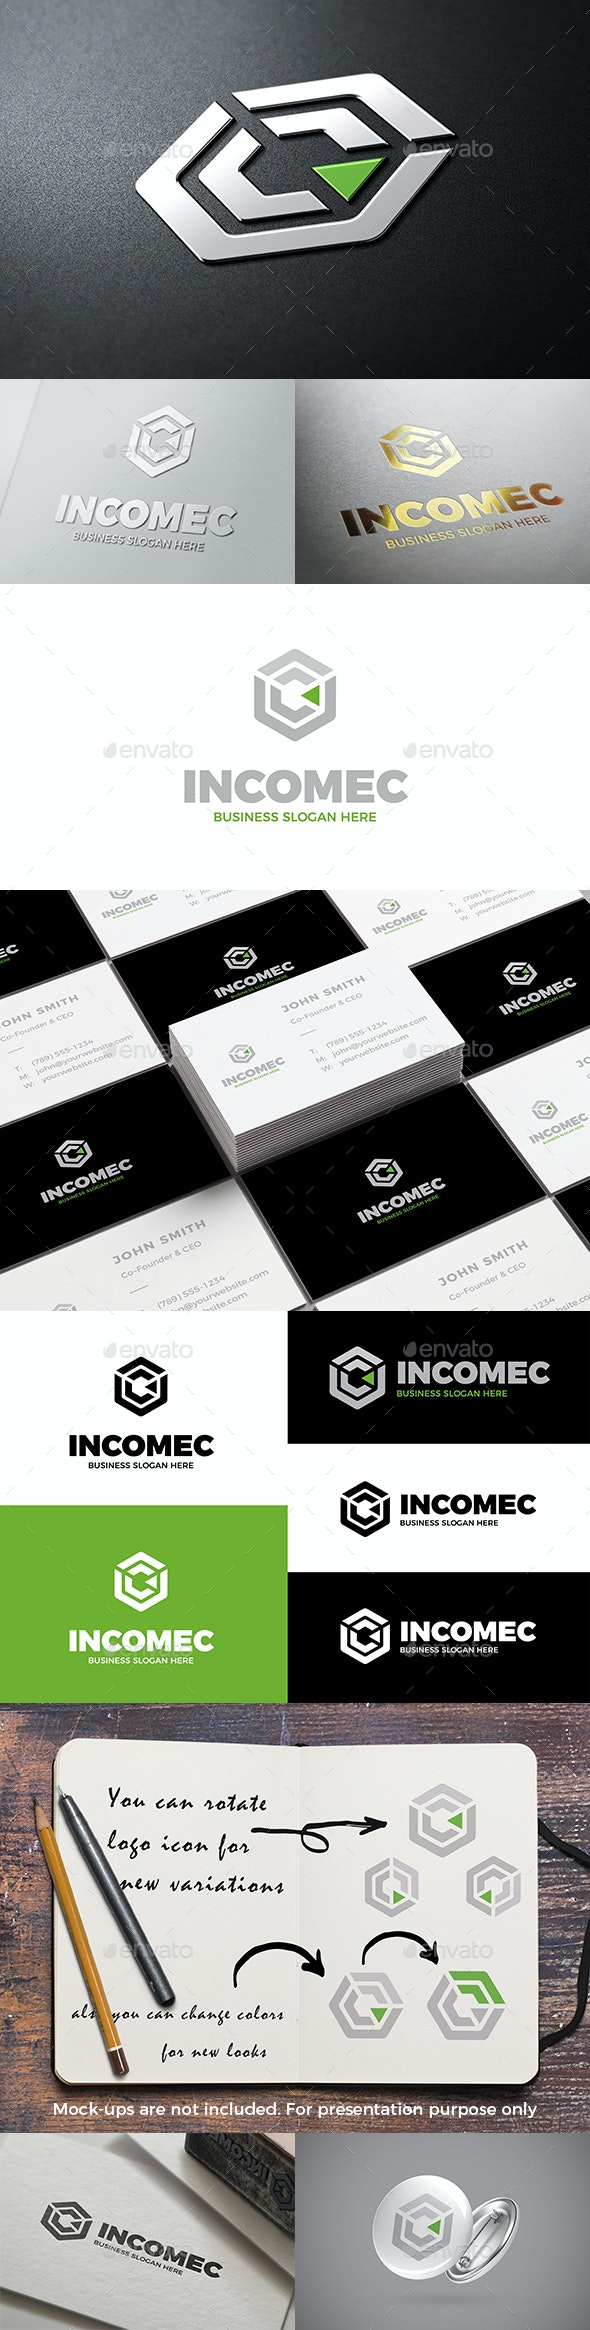 Abstract Cube Income C Symbol Logo - Abstract Logo Templates